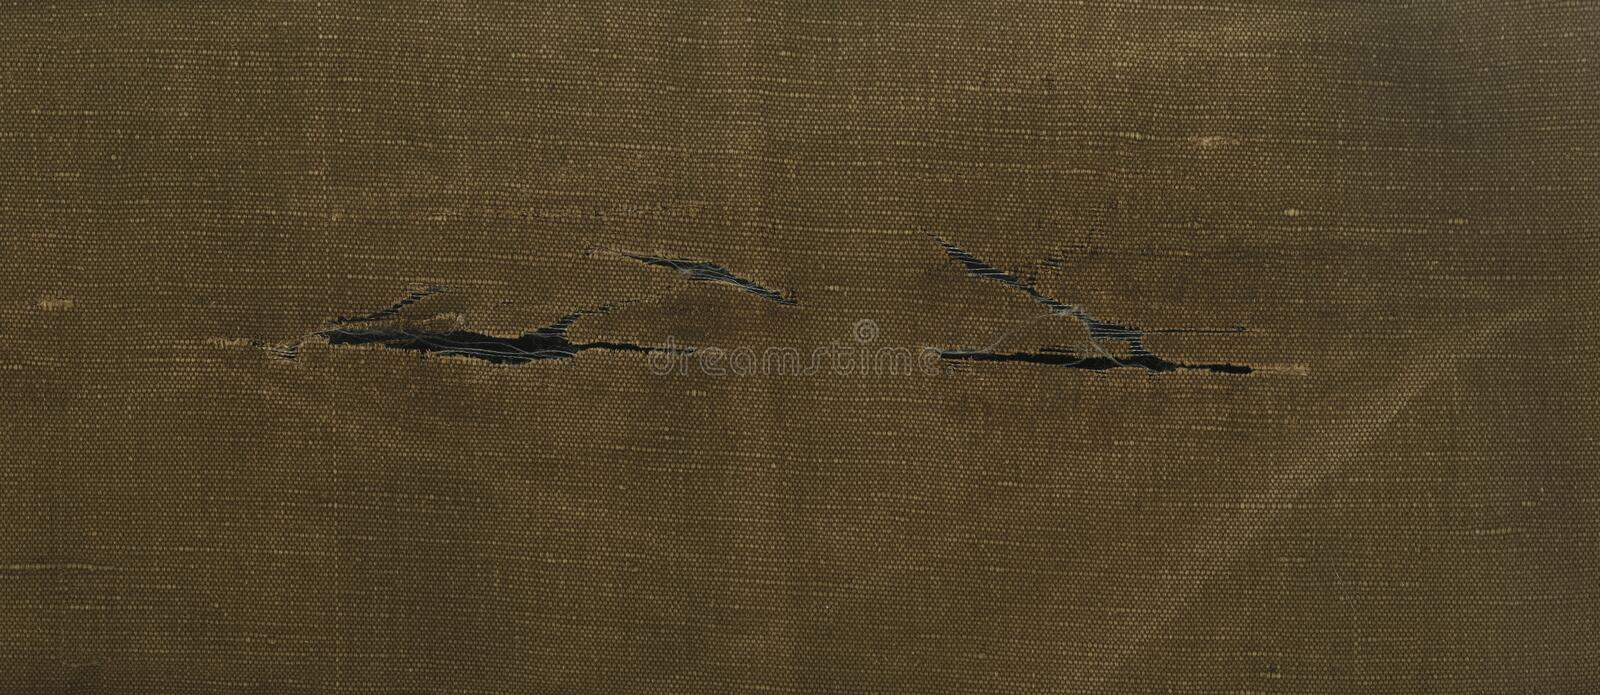 Skanirovaniya texture rough yellow brown torn tissue is tarpaulin. Direct scan is long and narrow ( panoramic ) pieces of canvas ( denim ) fabric with rips stock photo